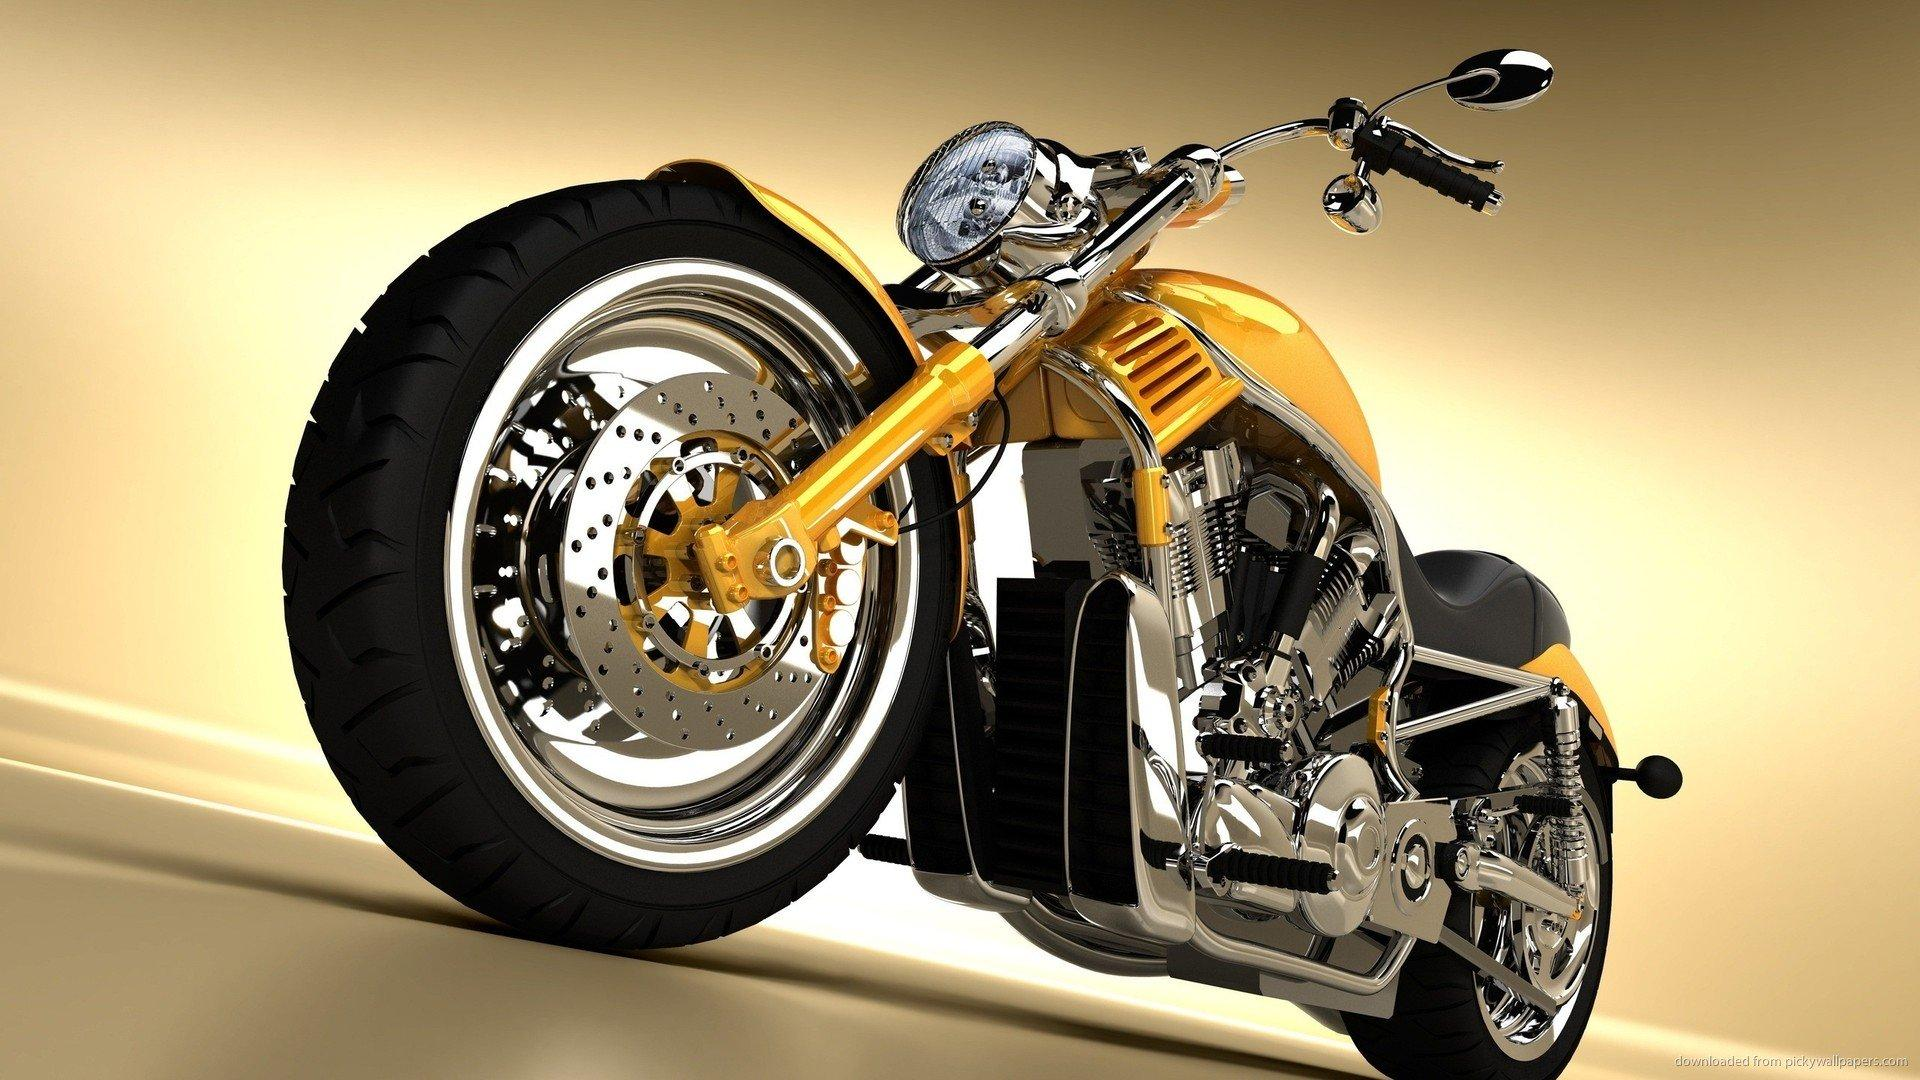 40 Motor Backgrounds & Motor Wallpapers in HD for Free Desktop Download